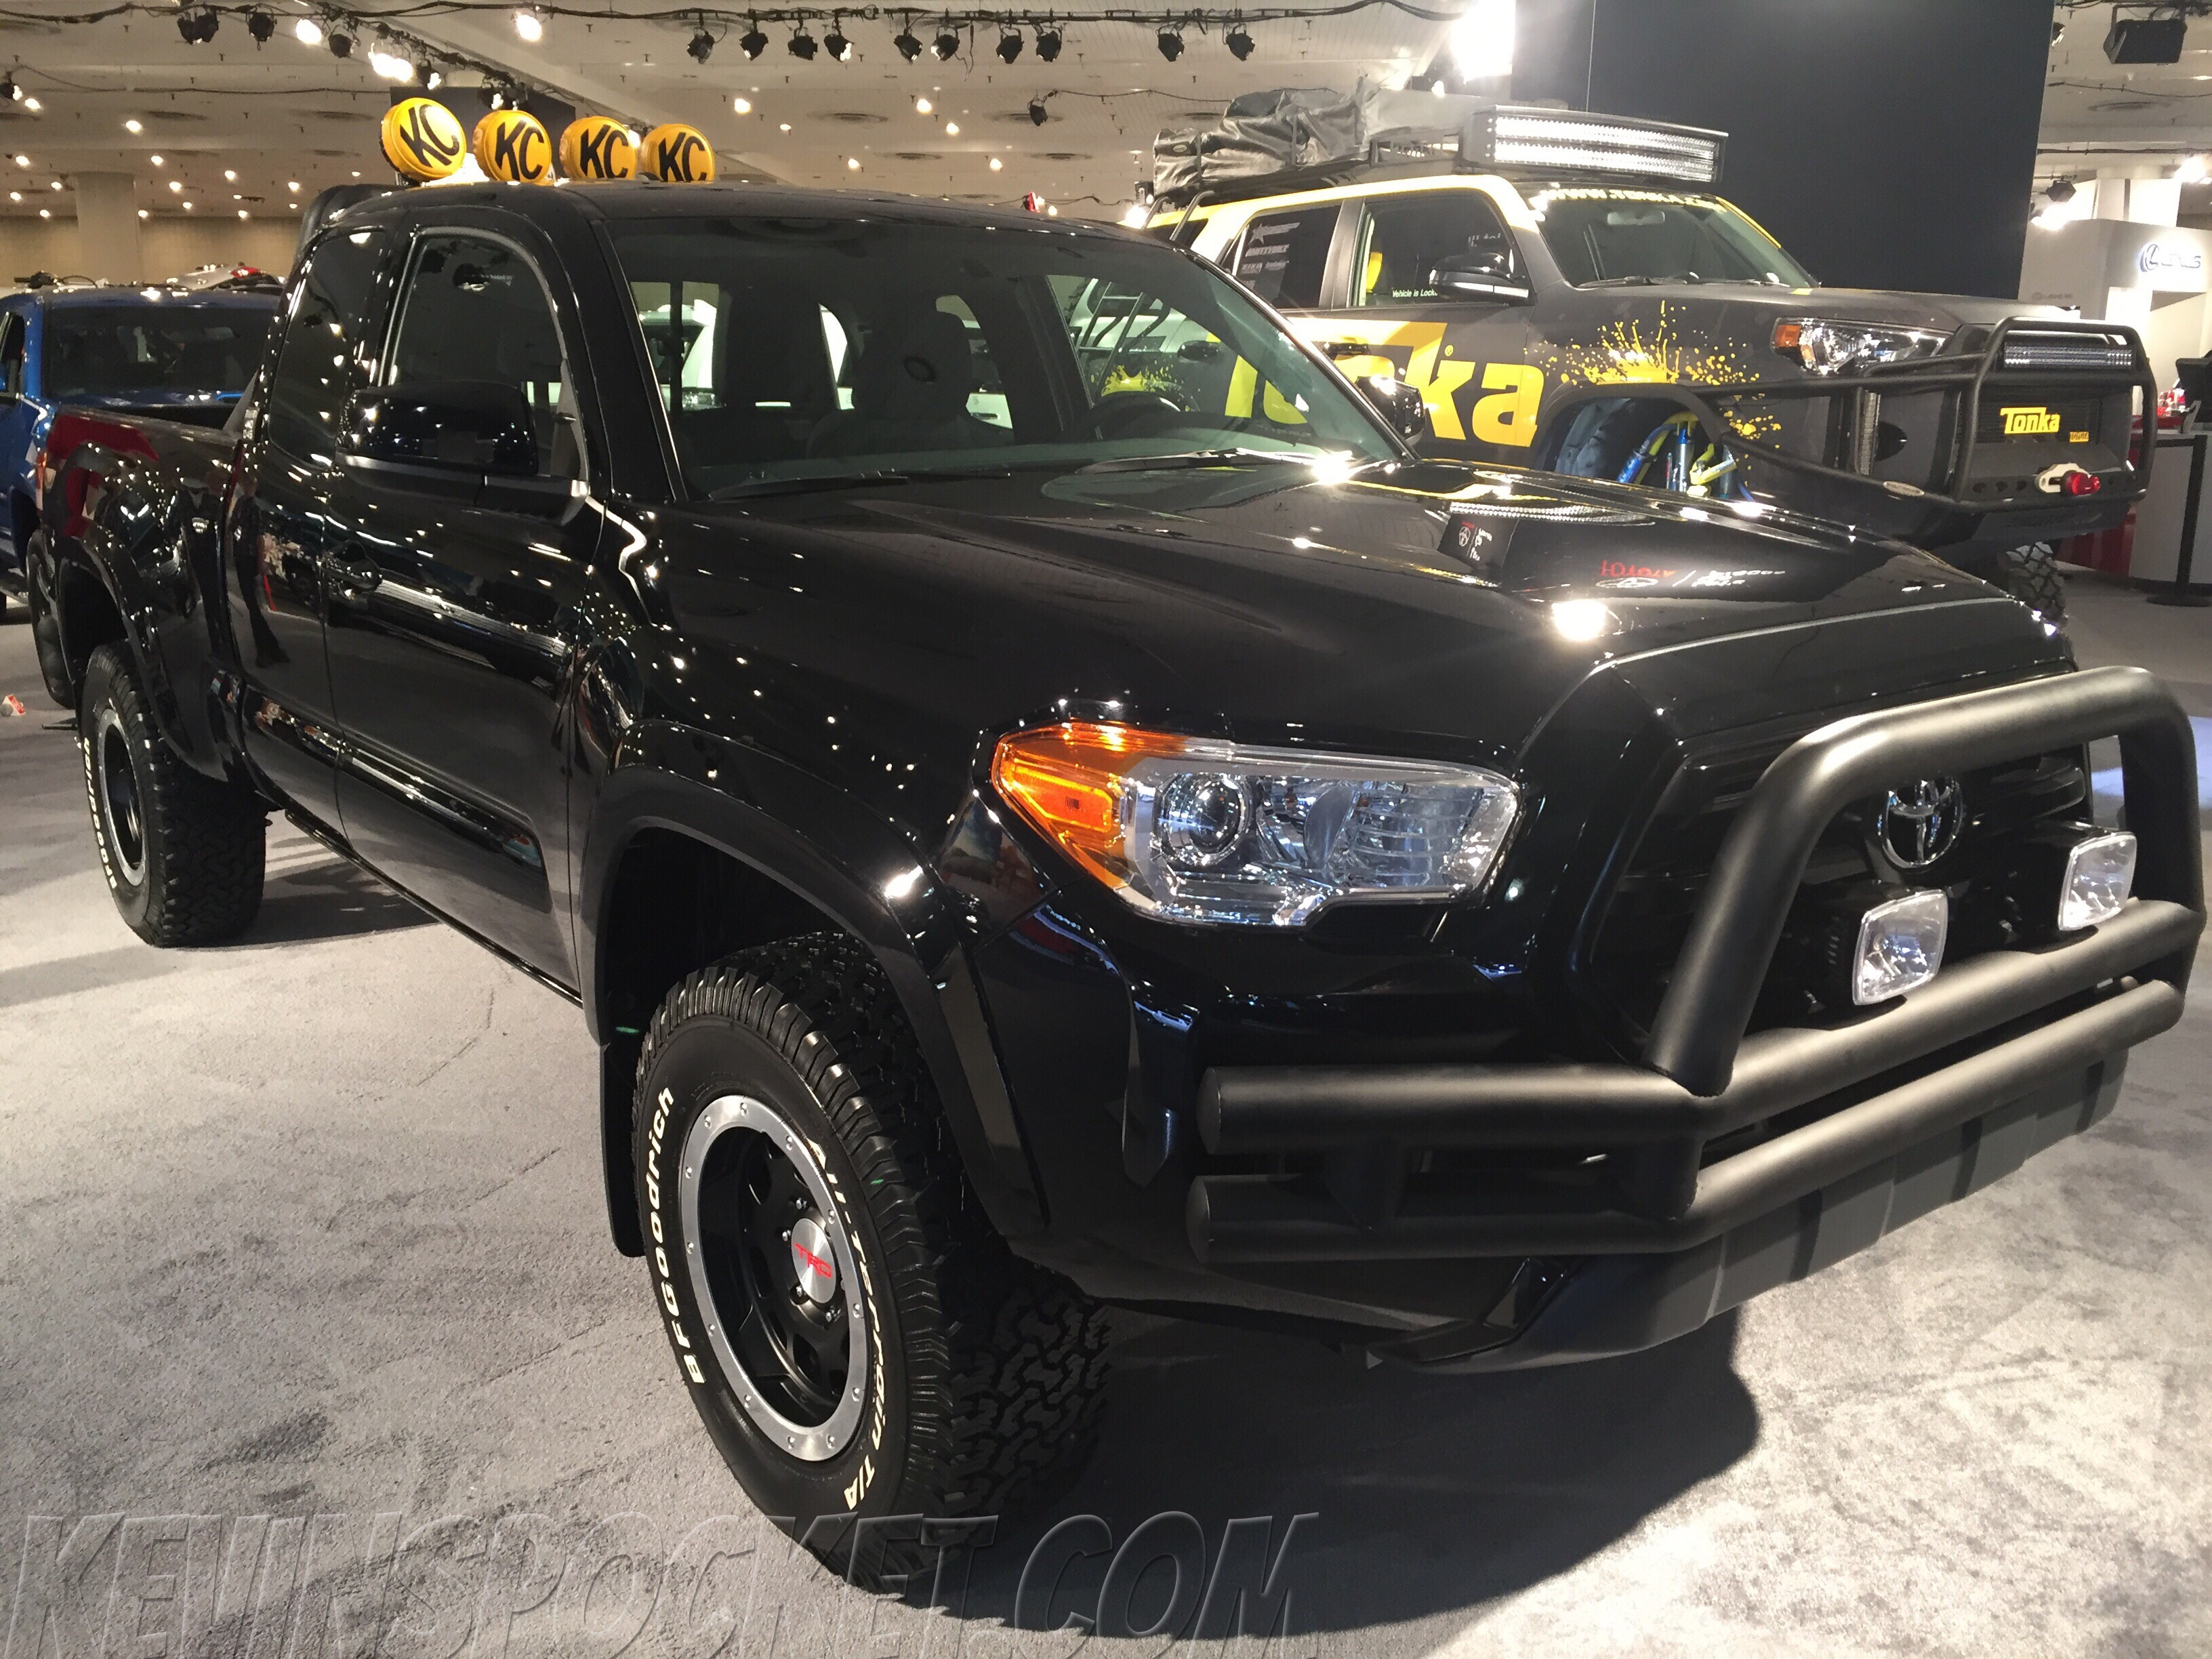 off road concept vehicles from the ny auto show toyota tacoma back to the future edition. Black Bedroom Furniture Sets. Home Design Ideas